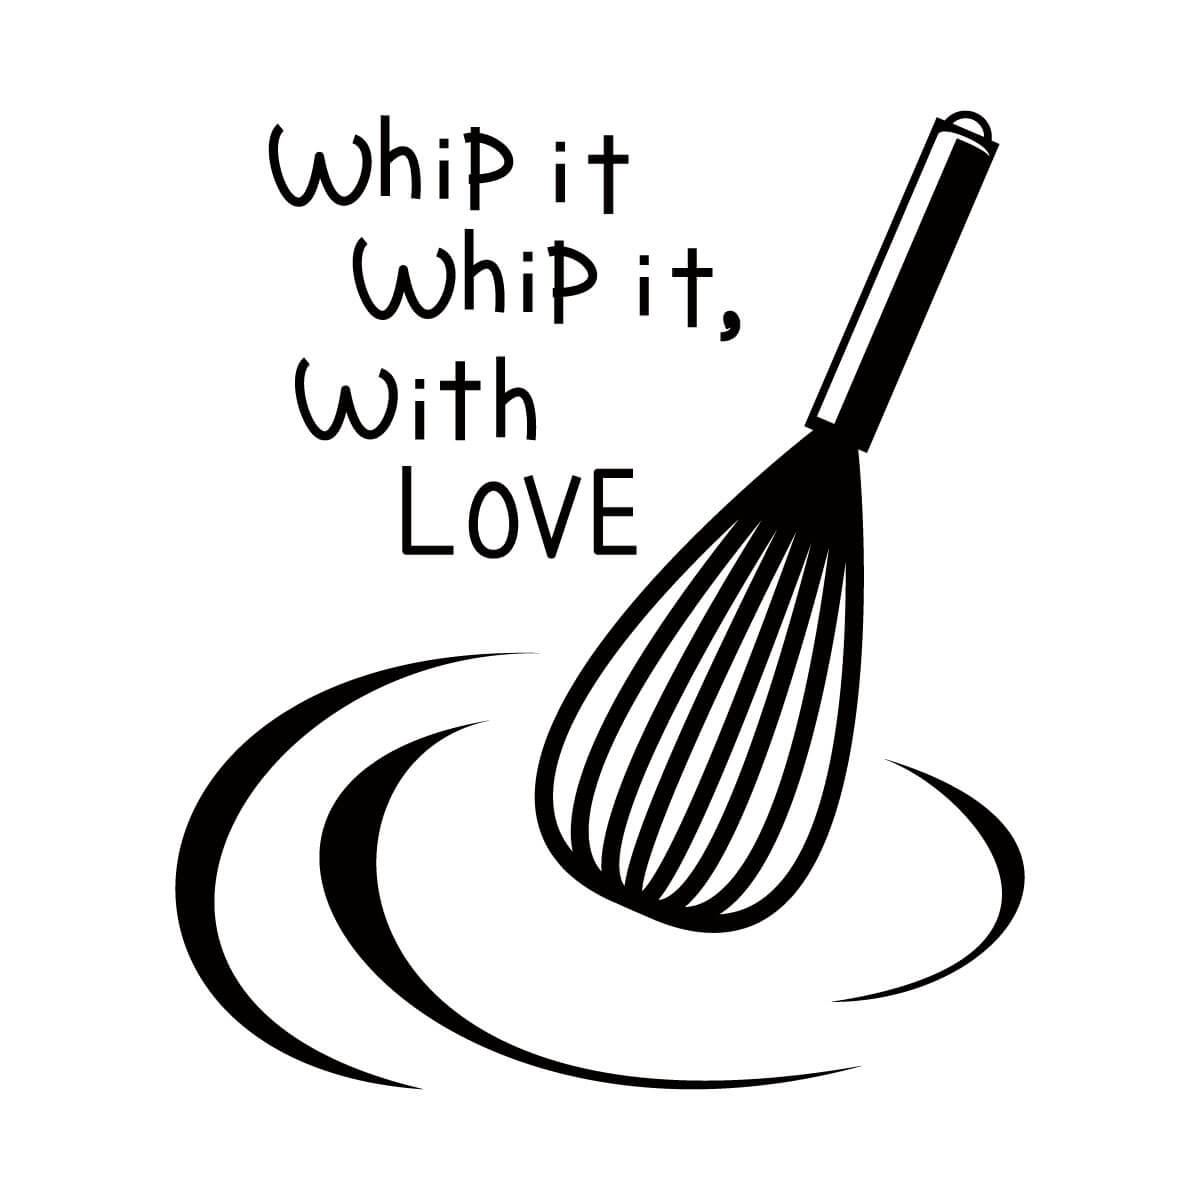 Whip It Whip It, With Love